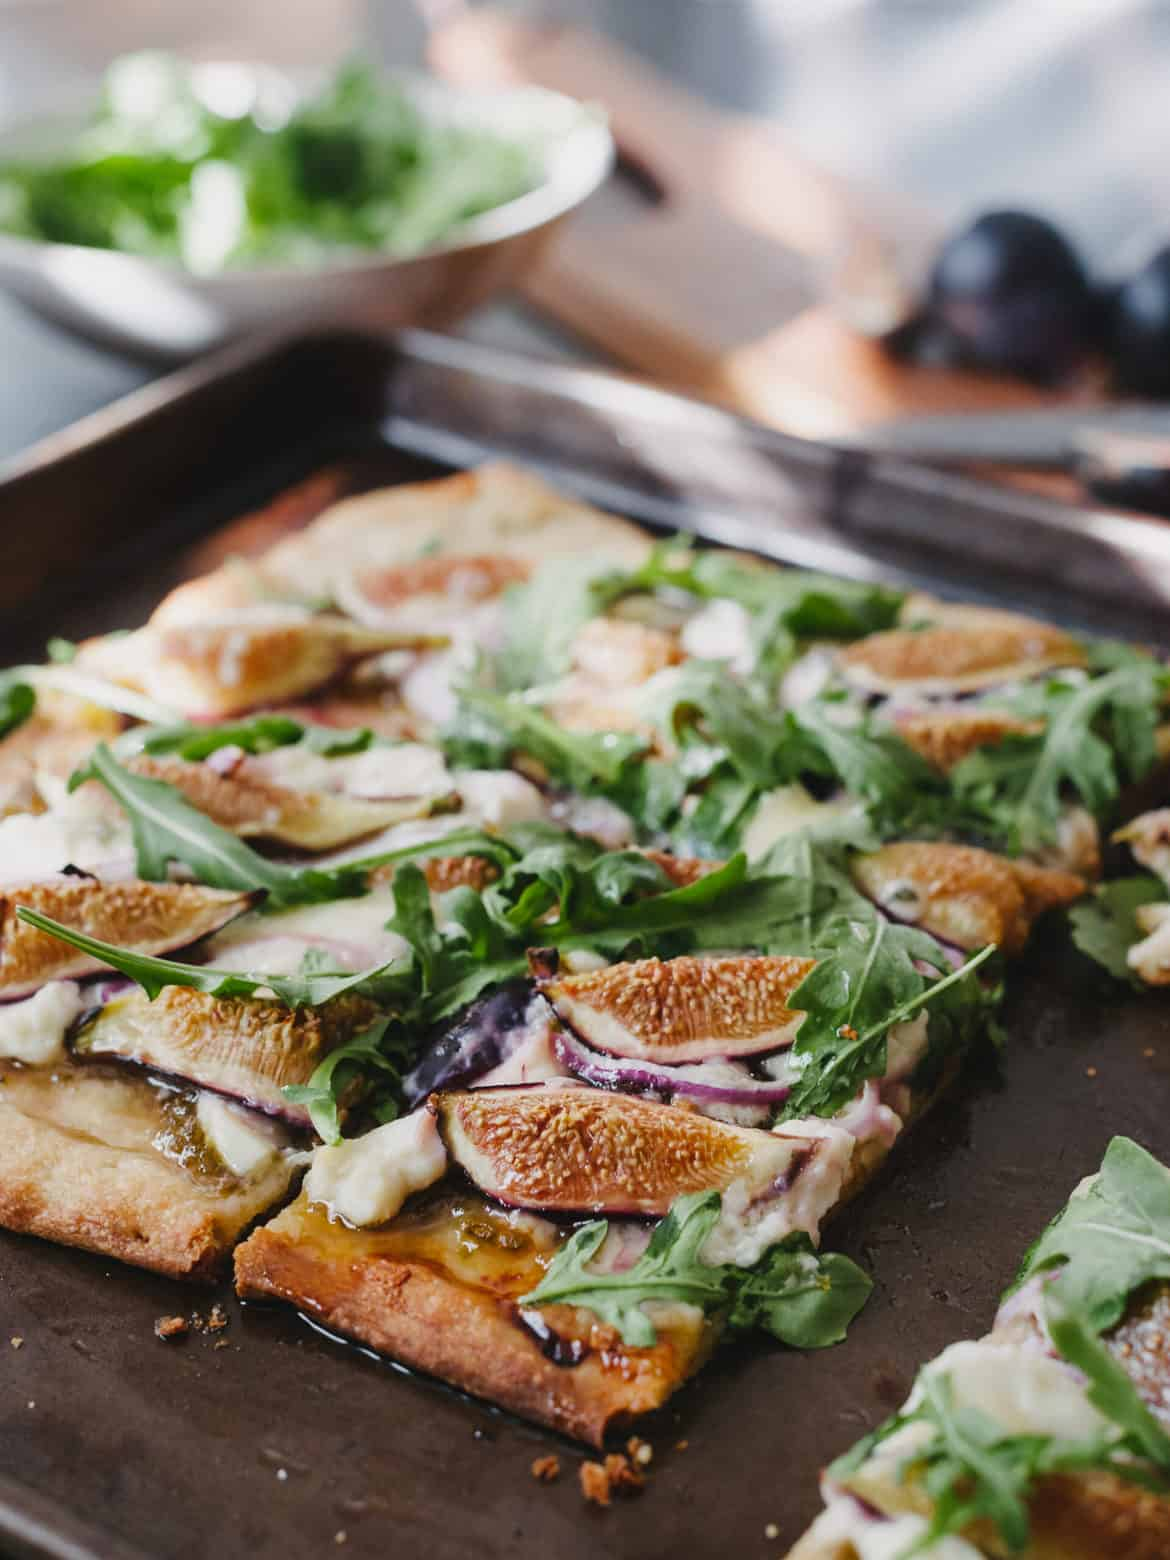 Homemade pizza topped with slices figs, fresh arugula, and blue cheese on a baking sheet.